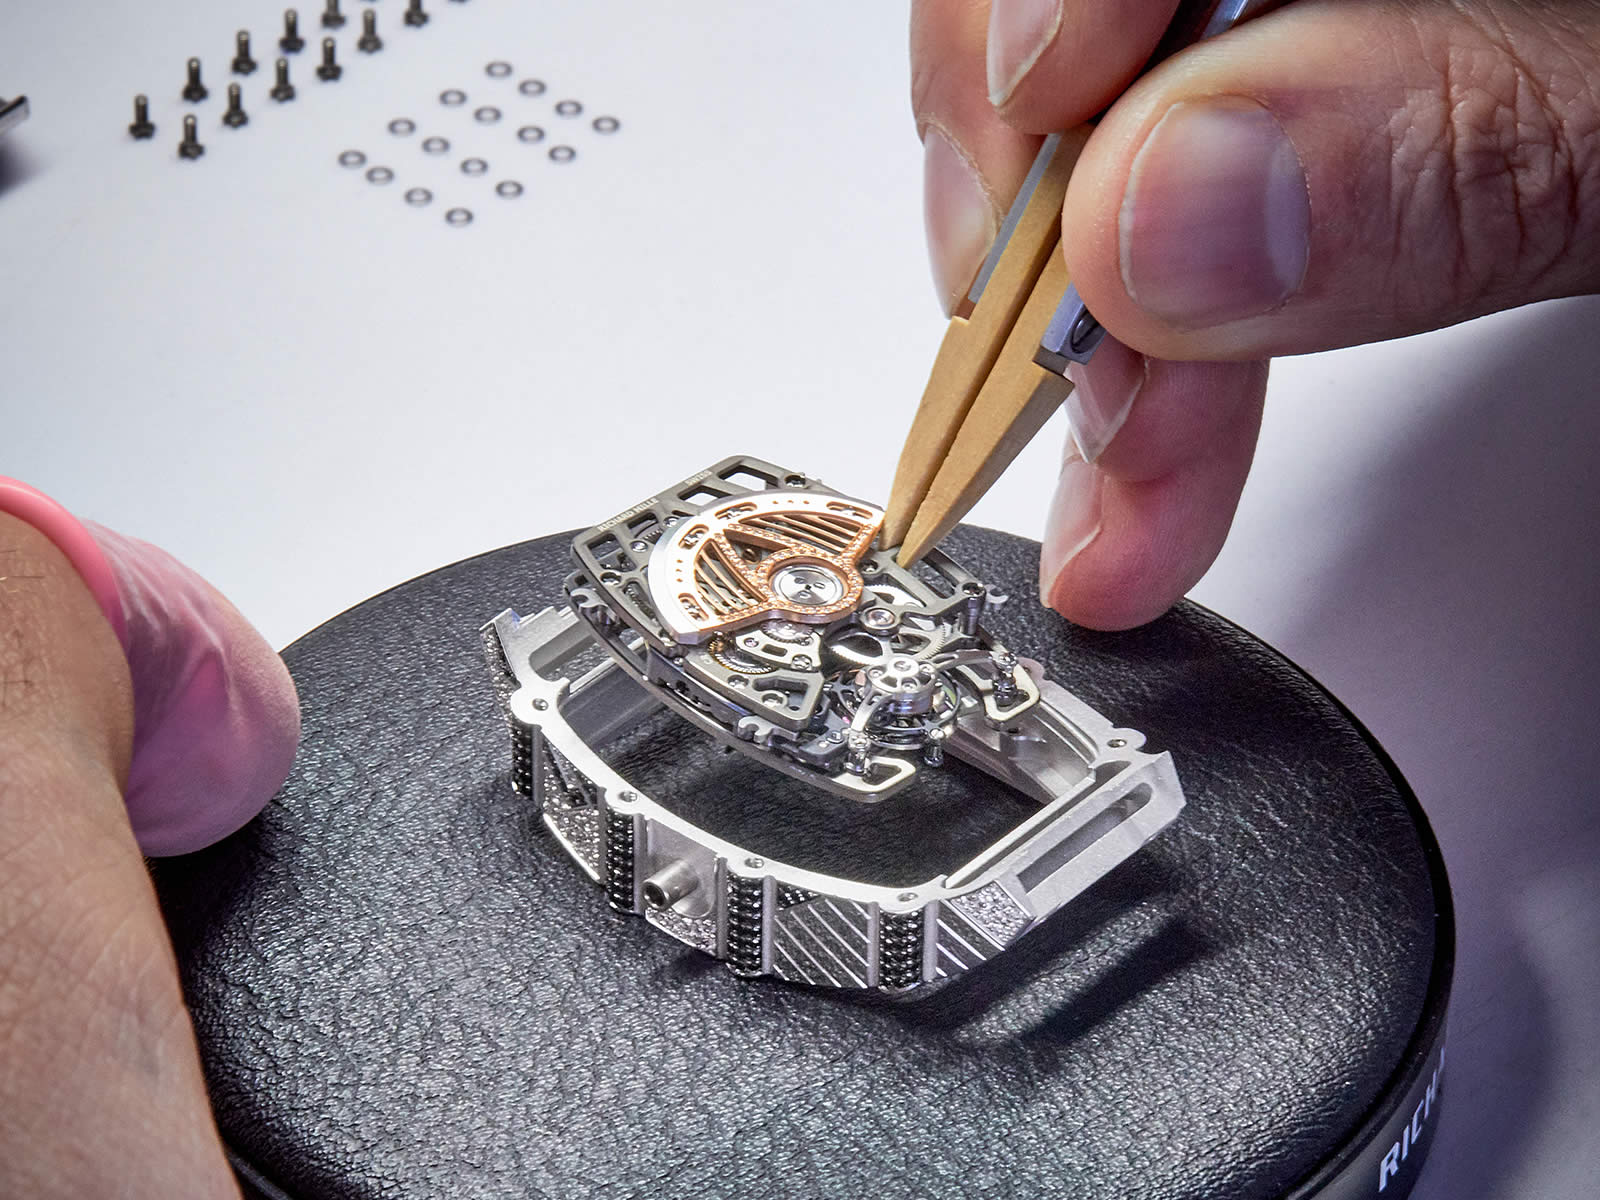 richard-mille-rm-71-01-automatic-tourbillon-talisman-15-.jpg